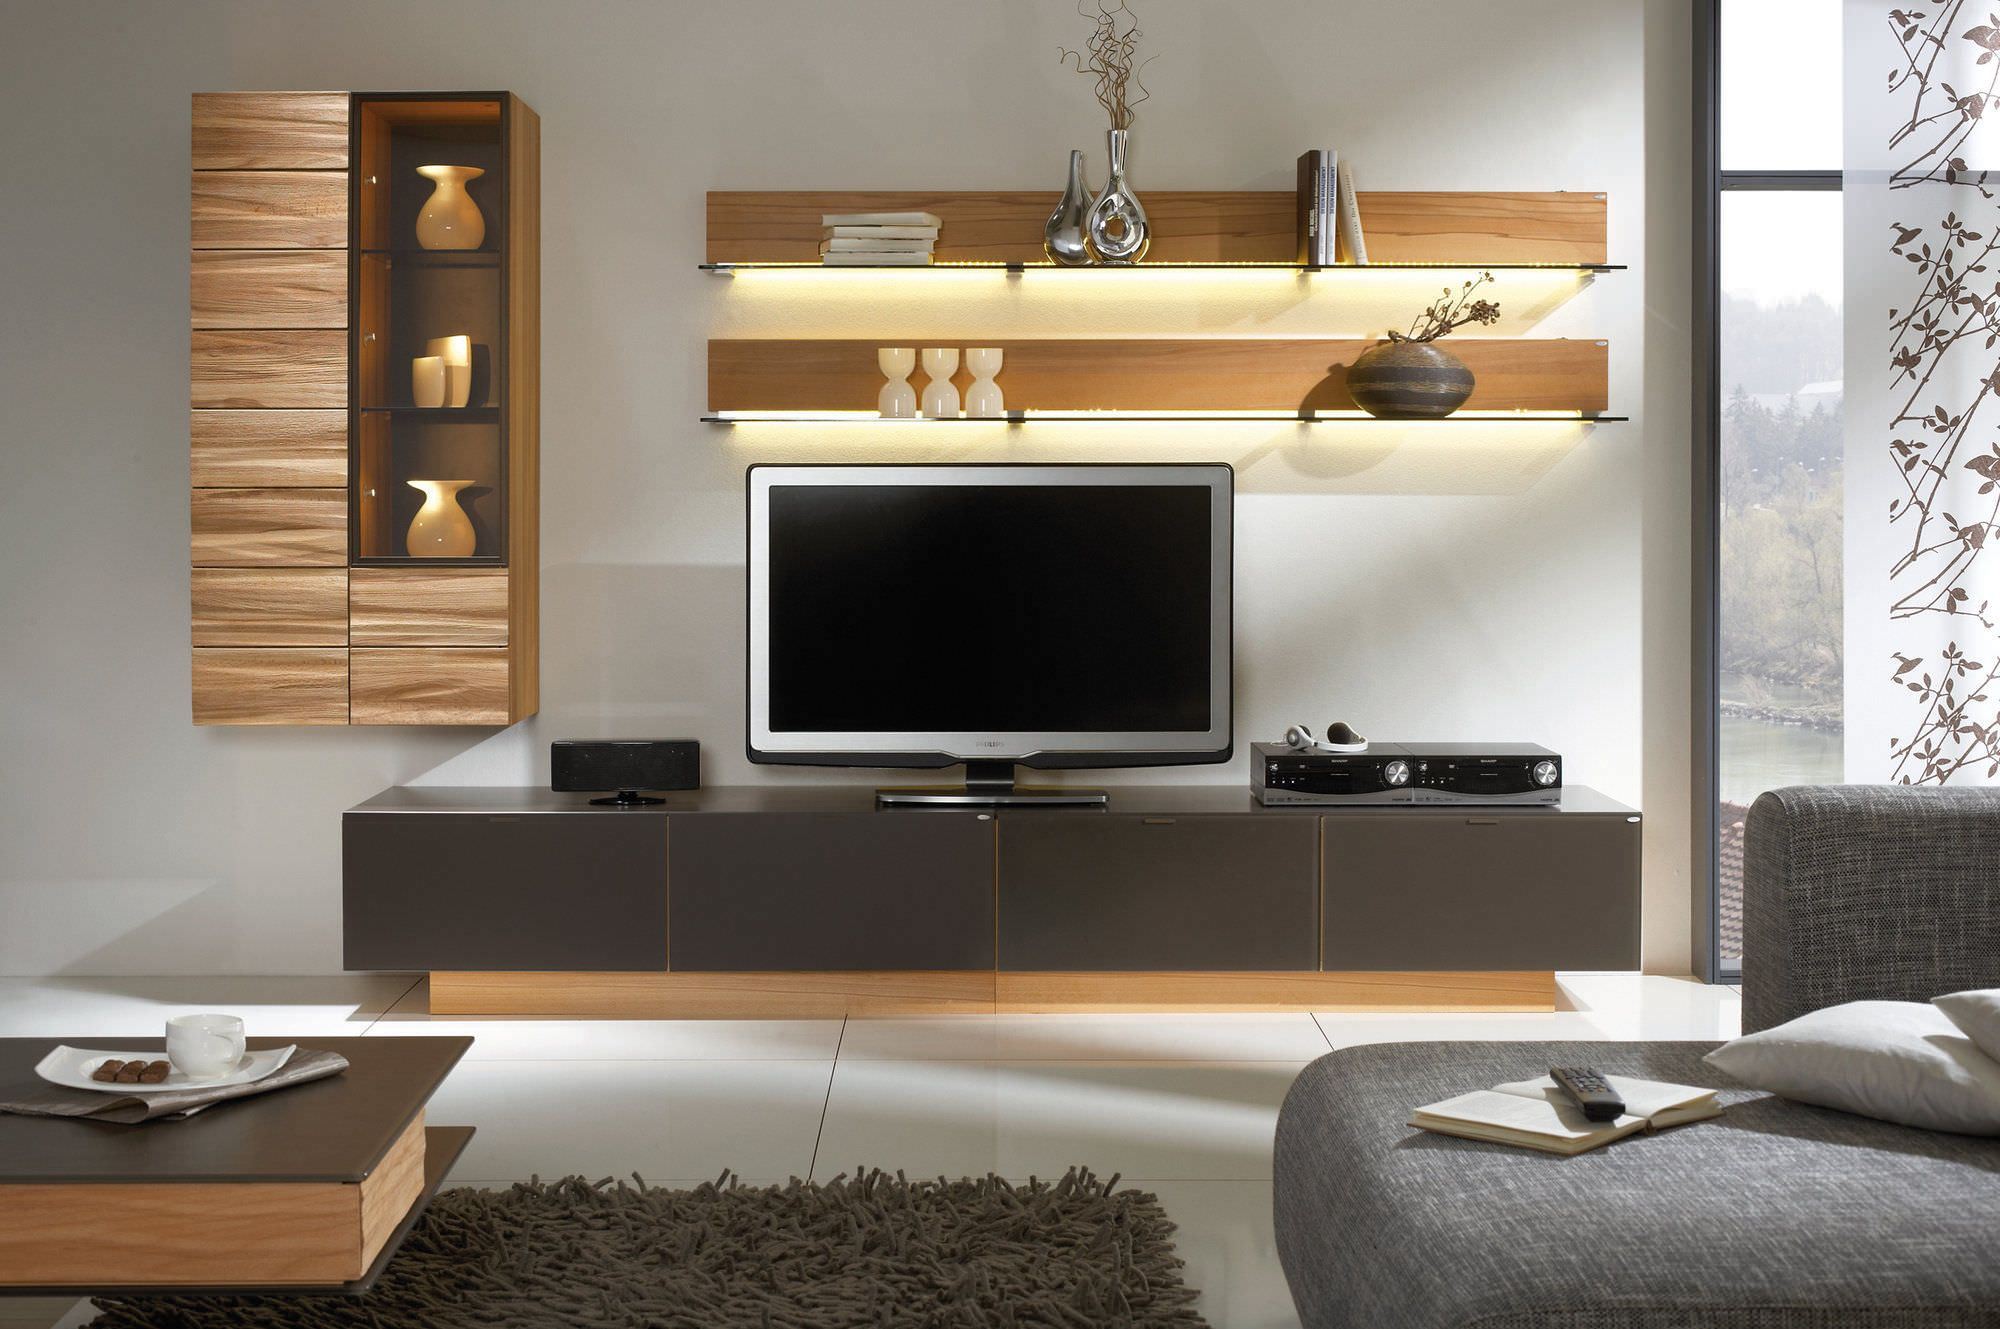 Living Room With Tv Decorating Ideas awesome white brown wood glass cool design contemporary tv wall